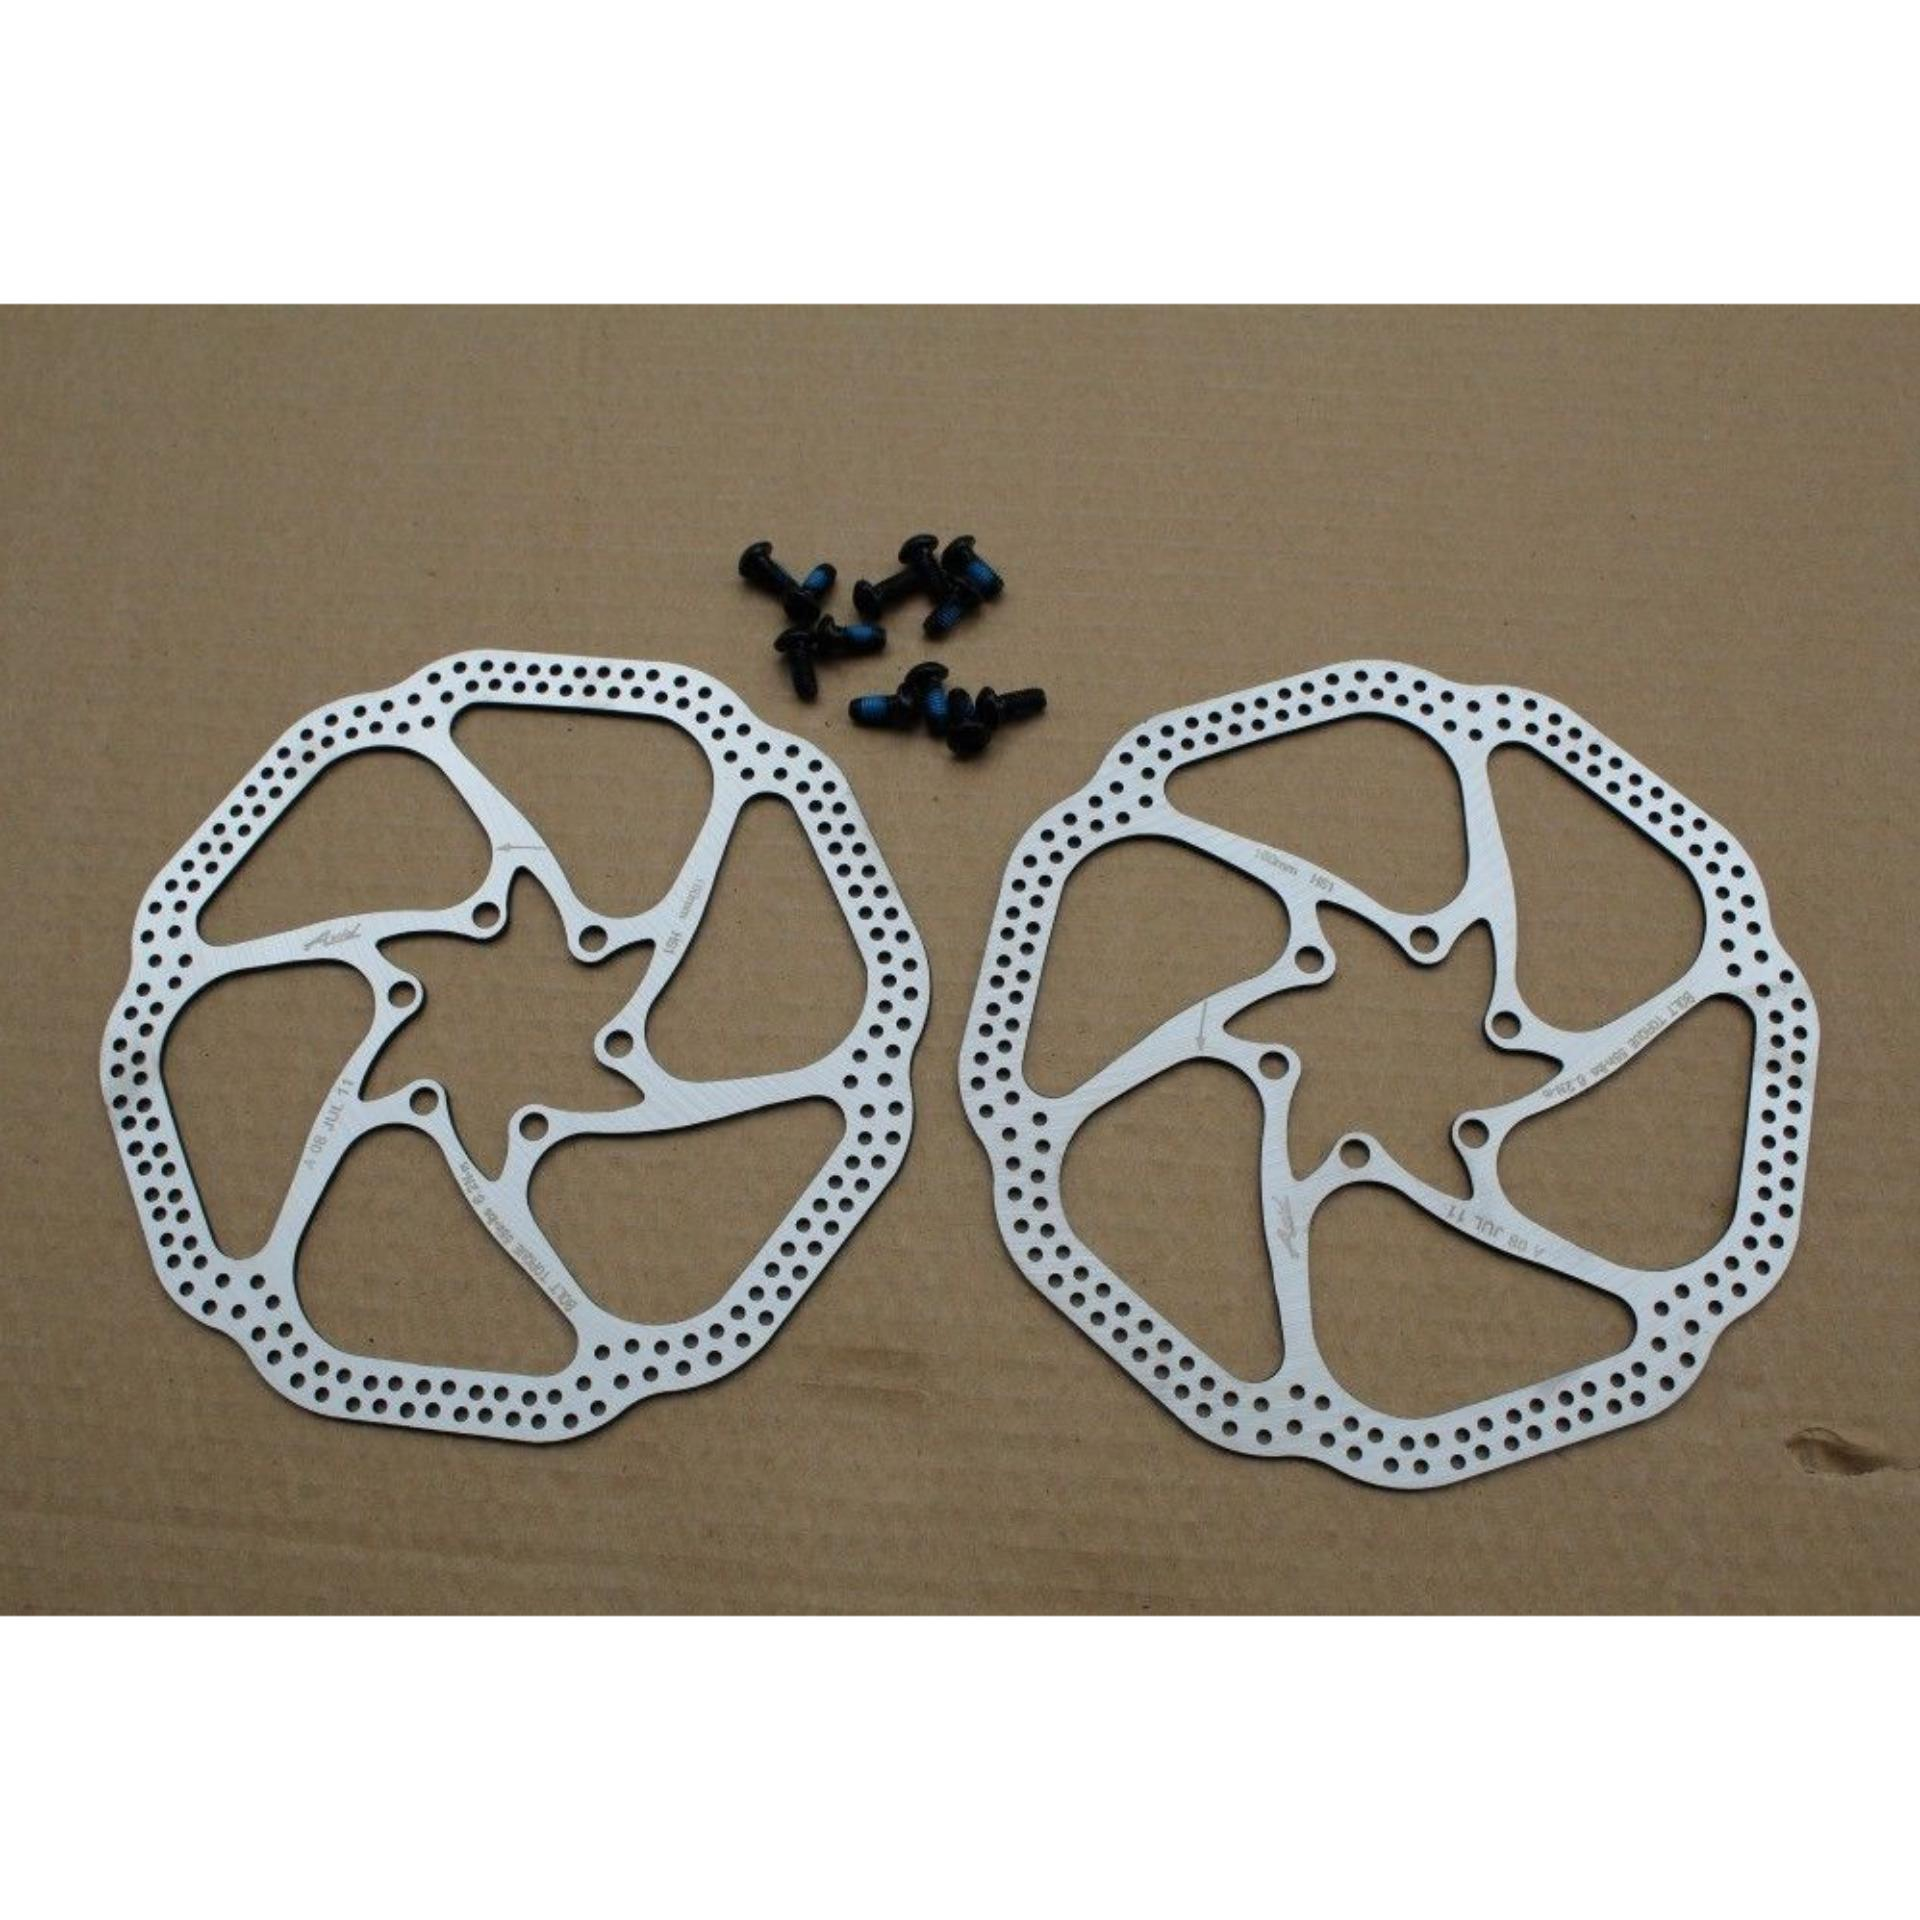 Philippines Brand New Avid Hs1 Brake Rotors 160mm 6 Inches Disc Rotor 160 Mm G3cs 2pcs 12 Blotsbb5 Bb7 Mtb